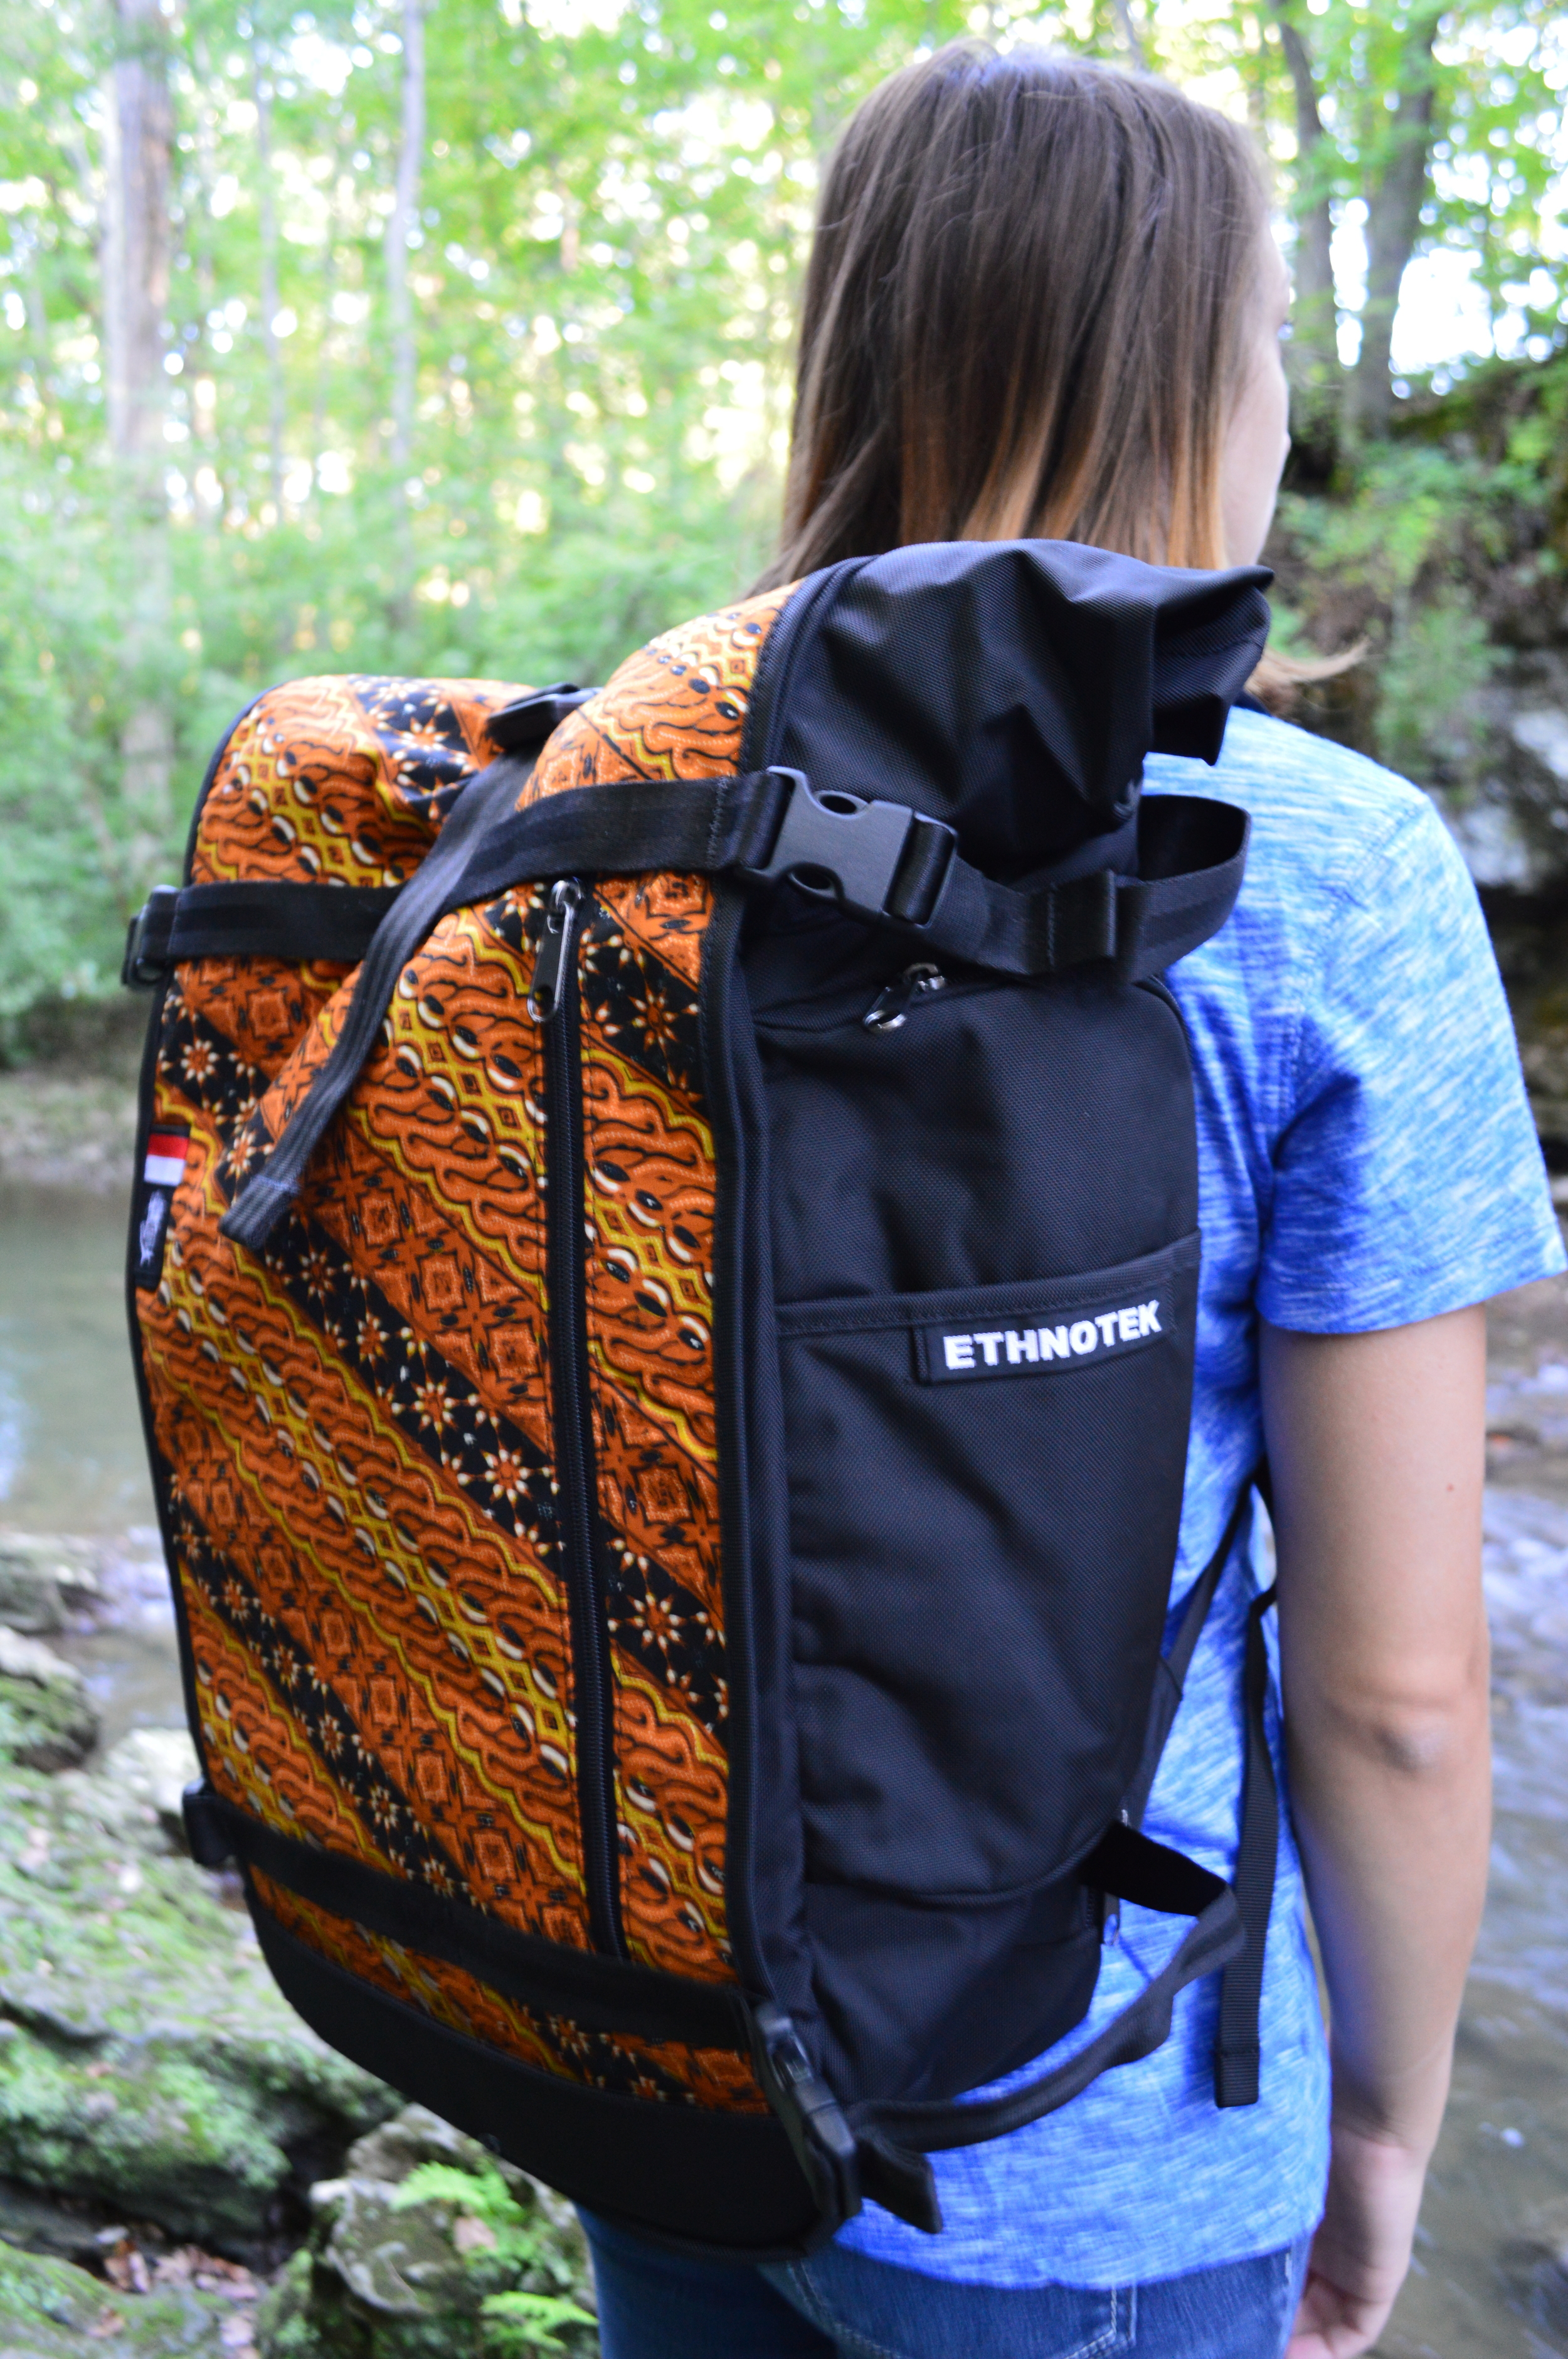 Ethnotek Indonesia 4 Raja Pack Backpack Review